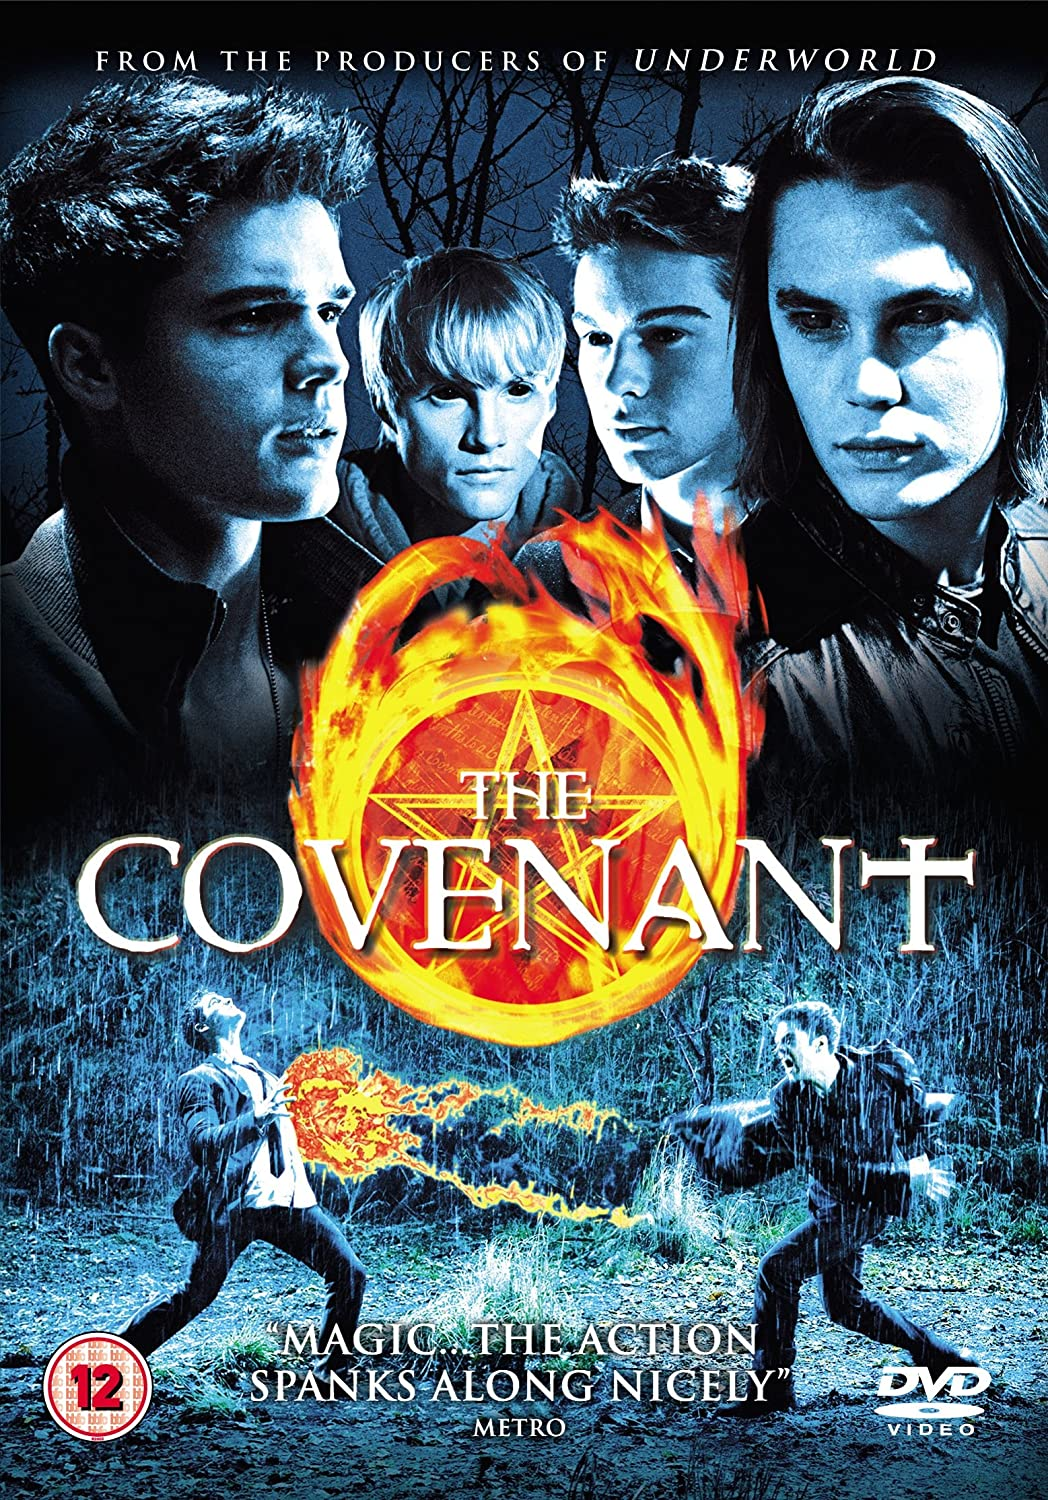 the covenant 2 movie movie search engine at searchcom